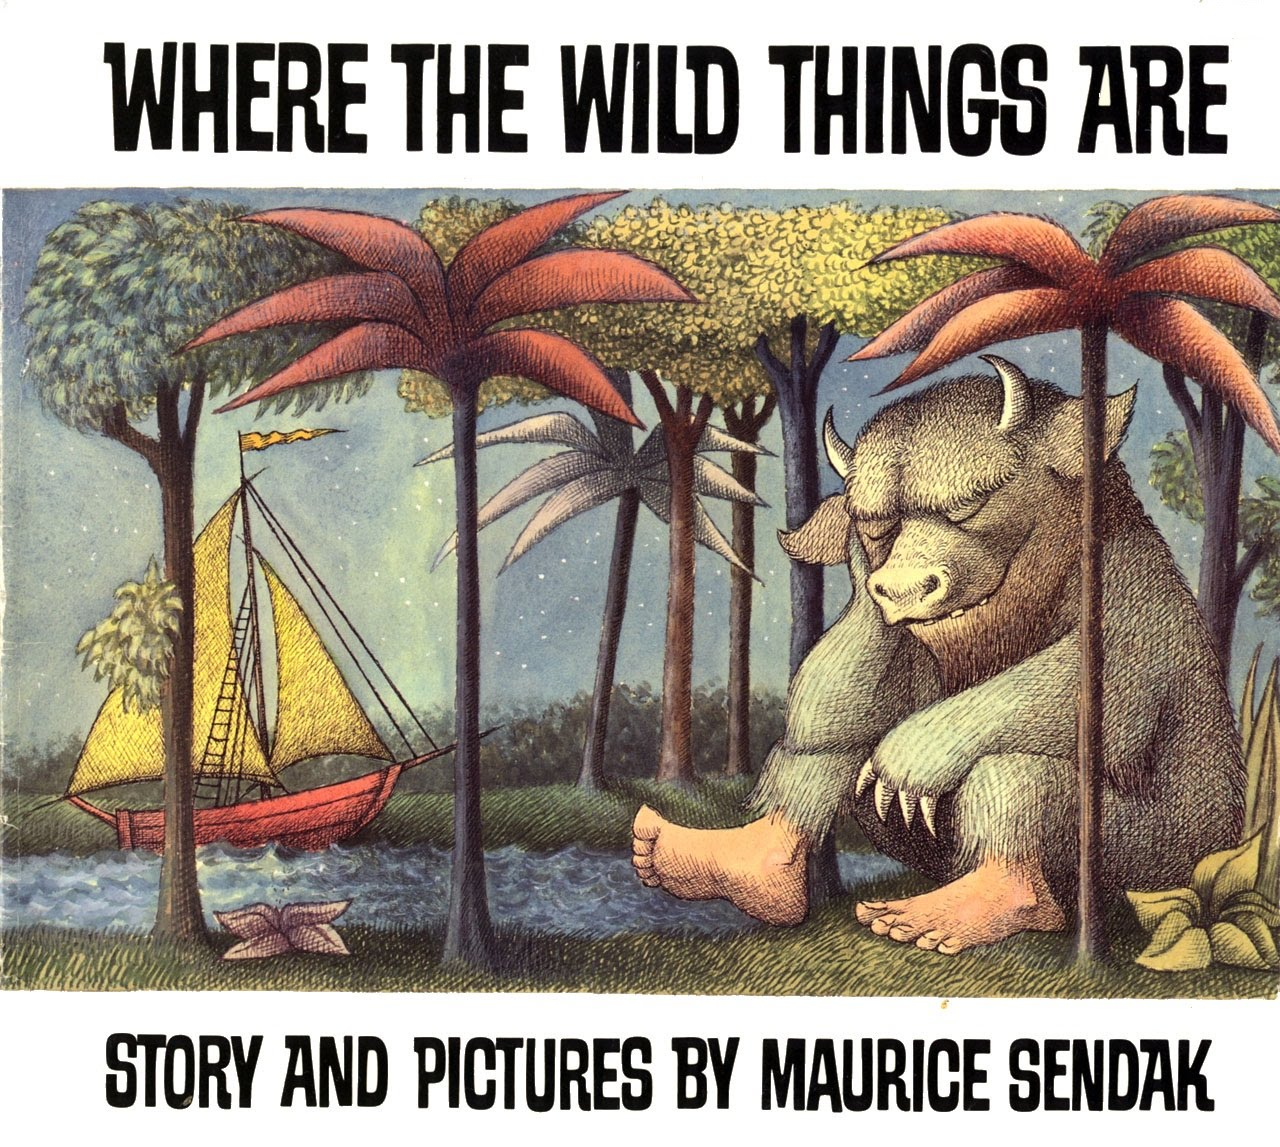 Where the Wild Things Are, by Maurice Sendak.                                                                                                                             The adventure that has inspired generations of children to let out their inner monsters, showing how imagination allows for an escape from life's doldrums. It's also a moving testament to family love: when young Max returns from his reverie, his mother has saved him a hot dinner.                                                                                                                            Buy now: Where the Wild Things Are